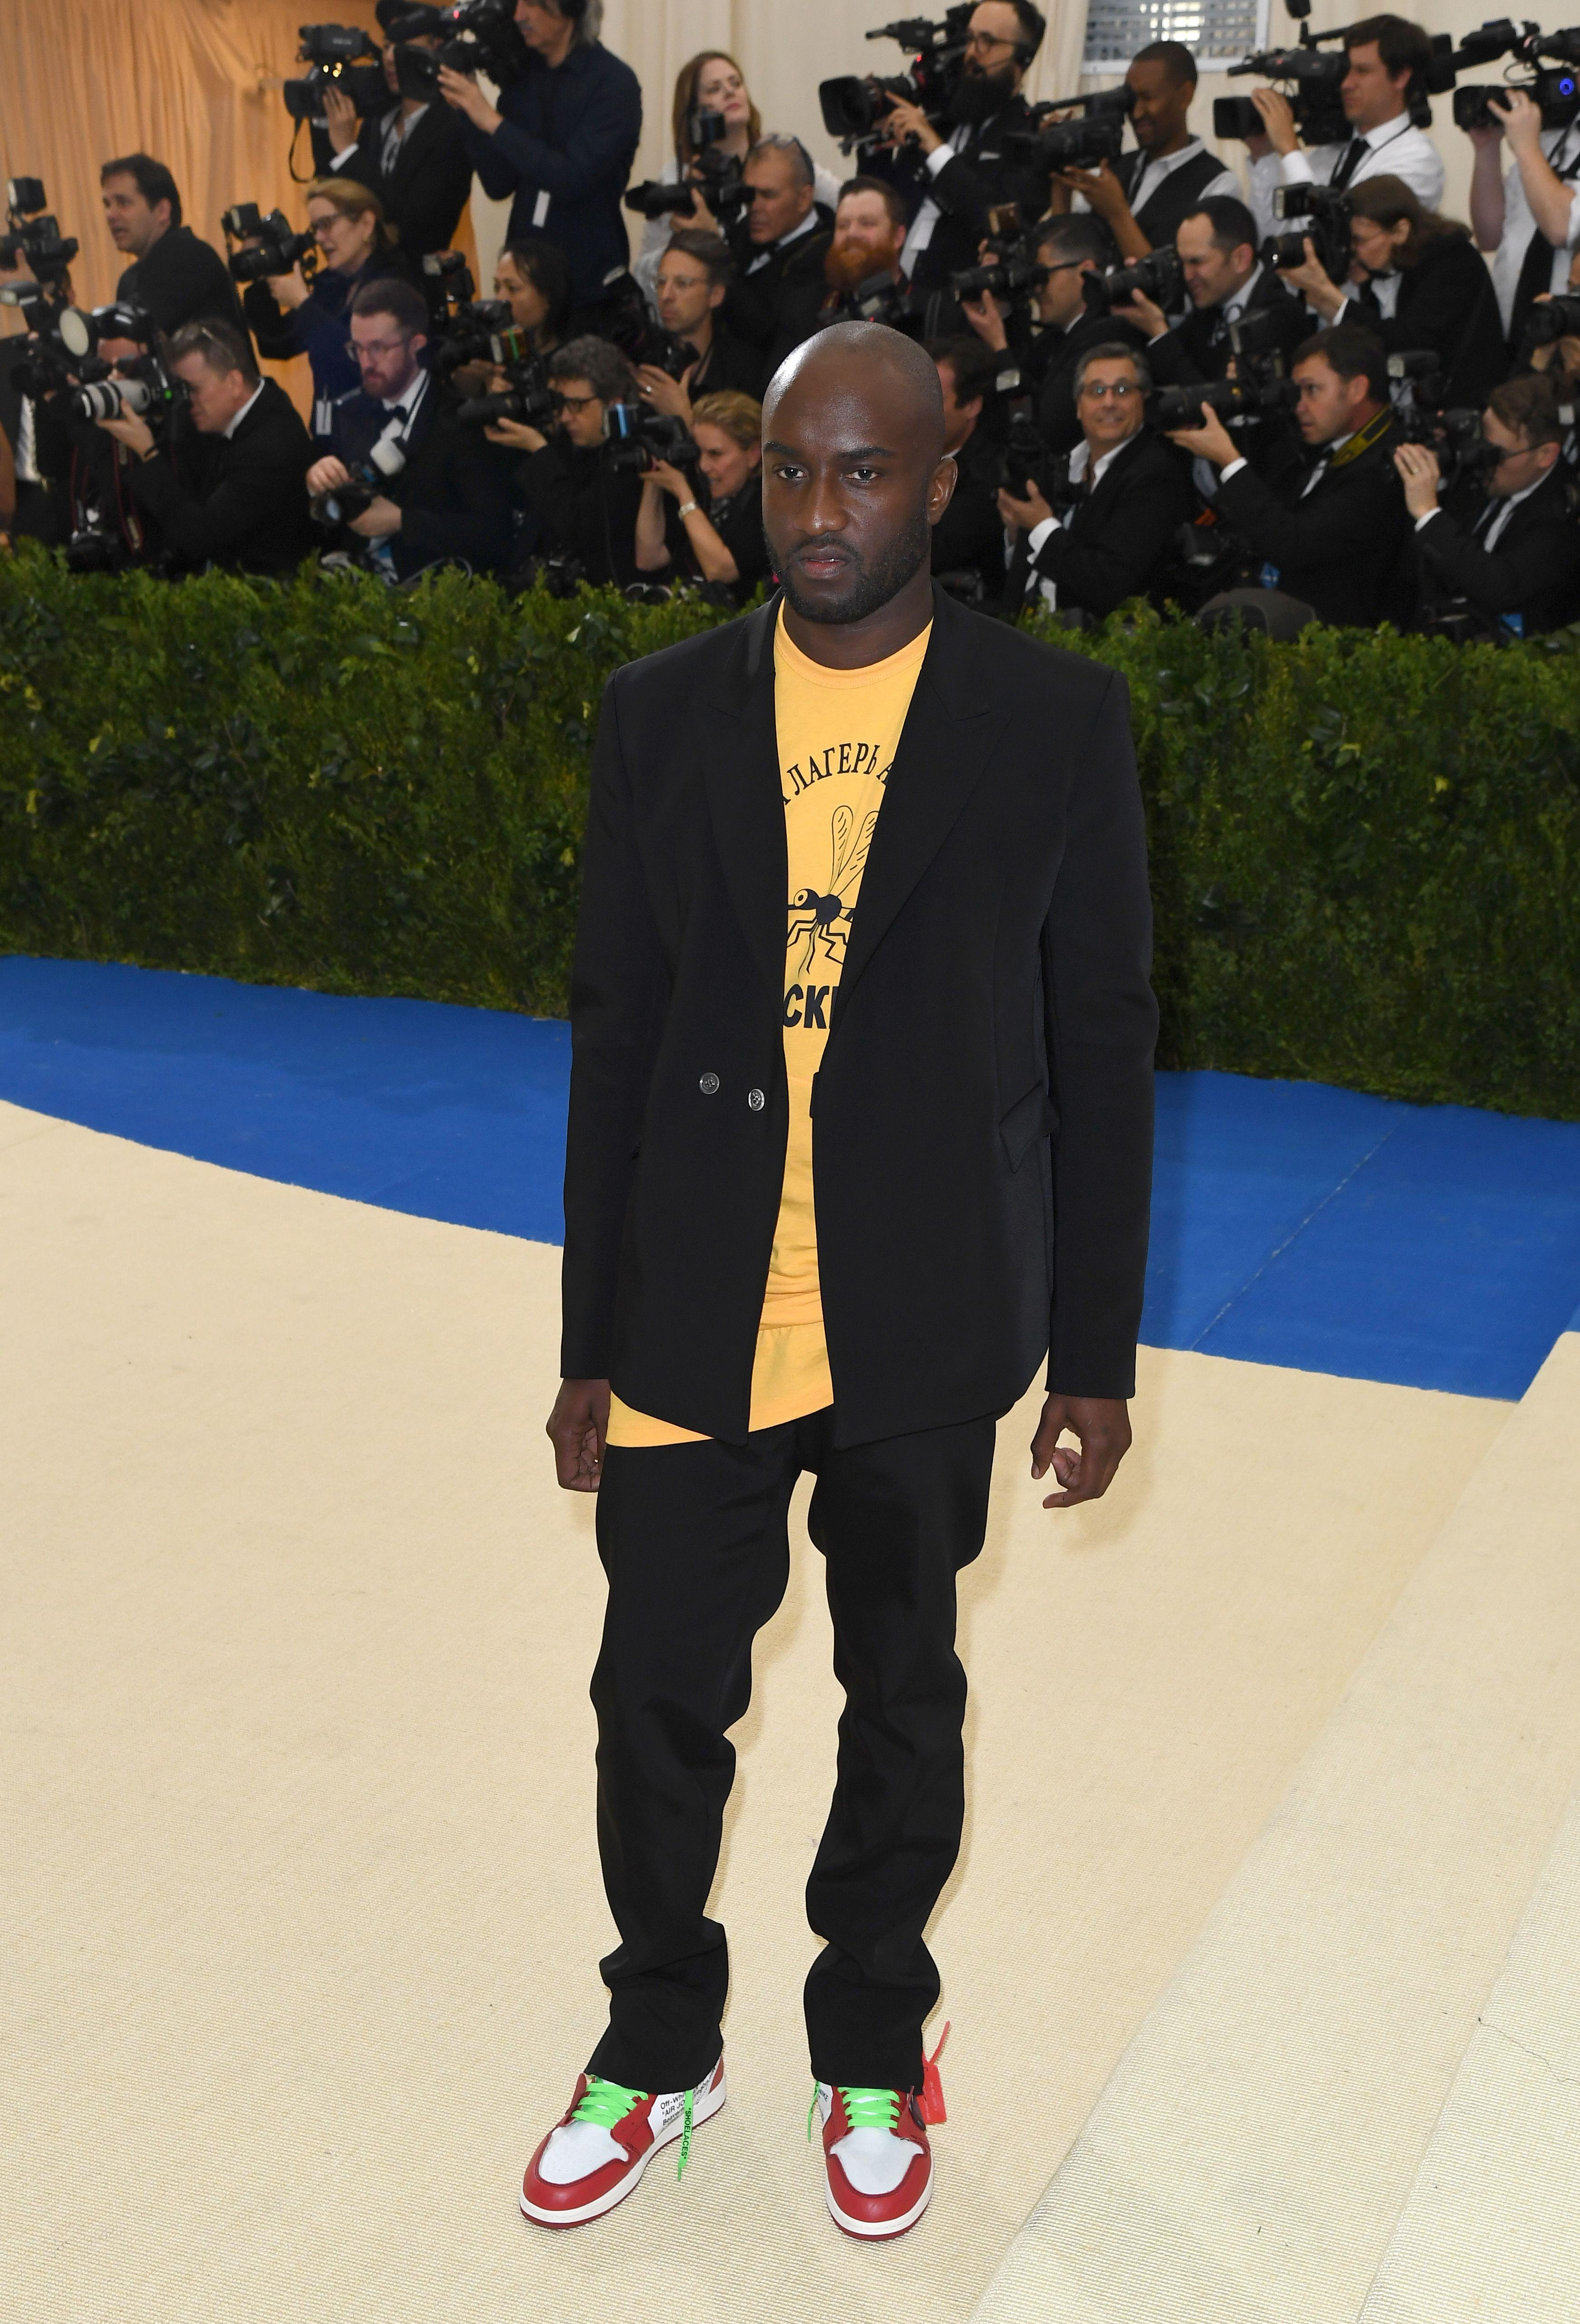 Virgil Abloh confirmed as artistic director of menswear for Louis Vuitton